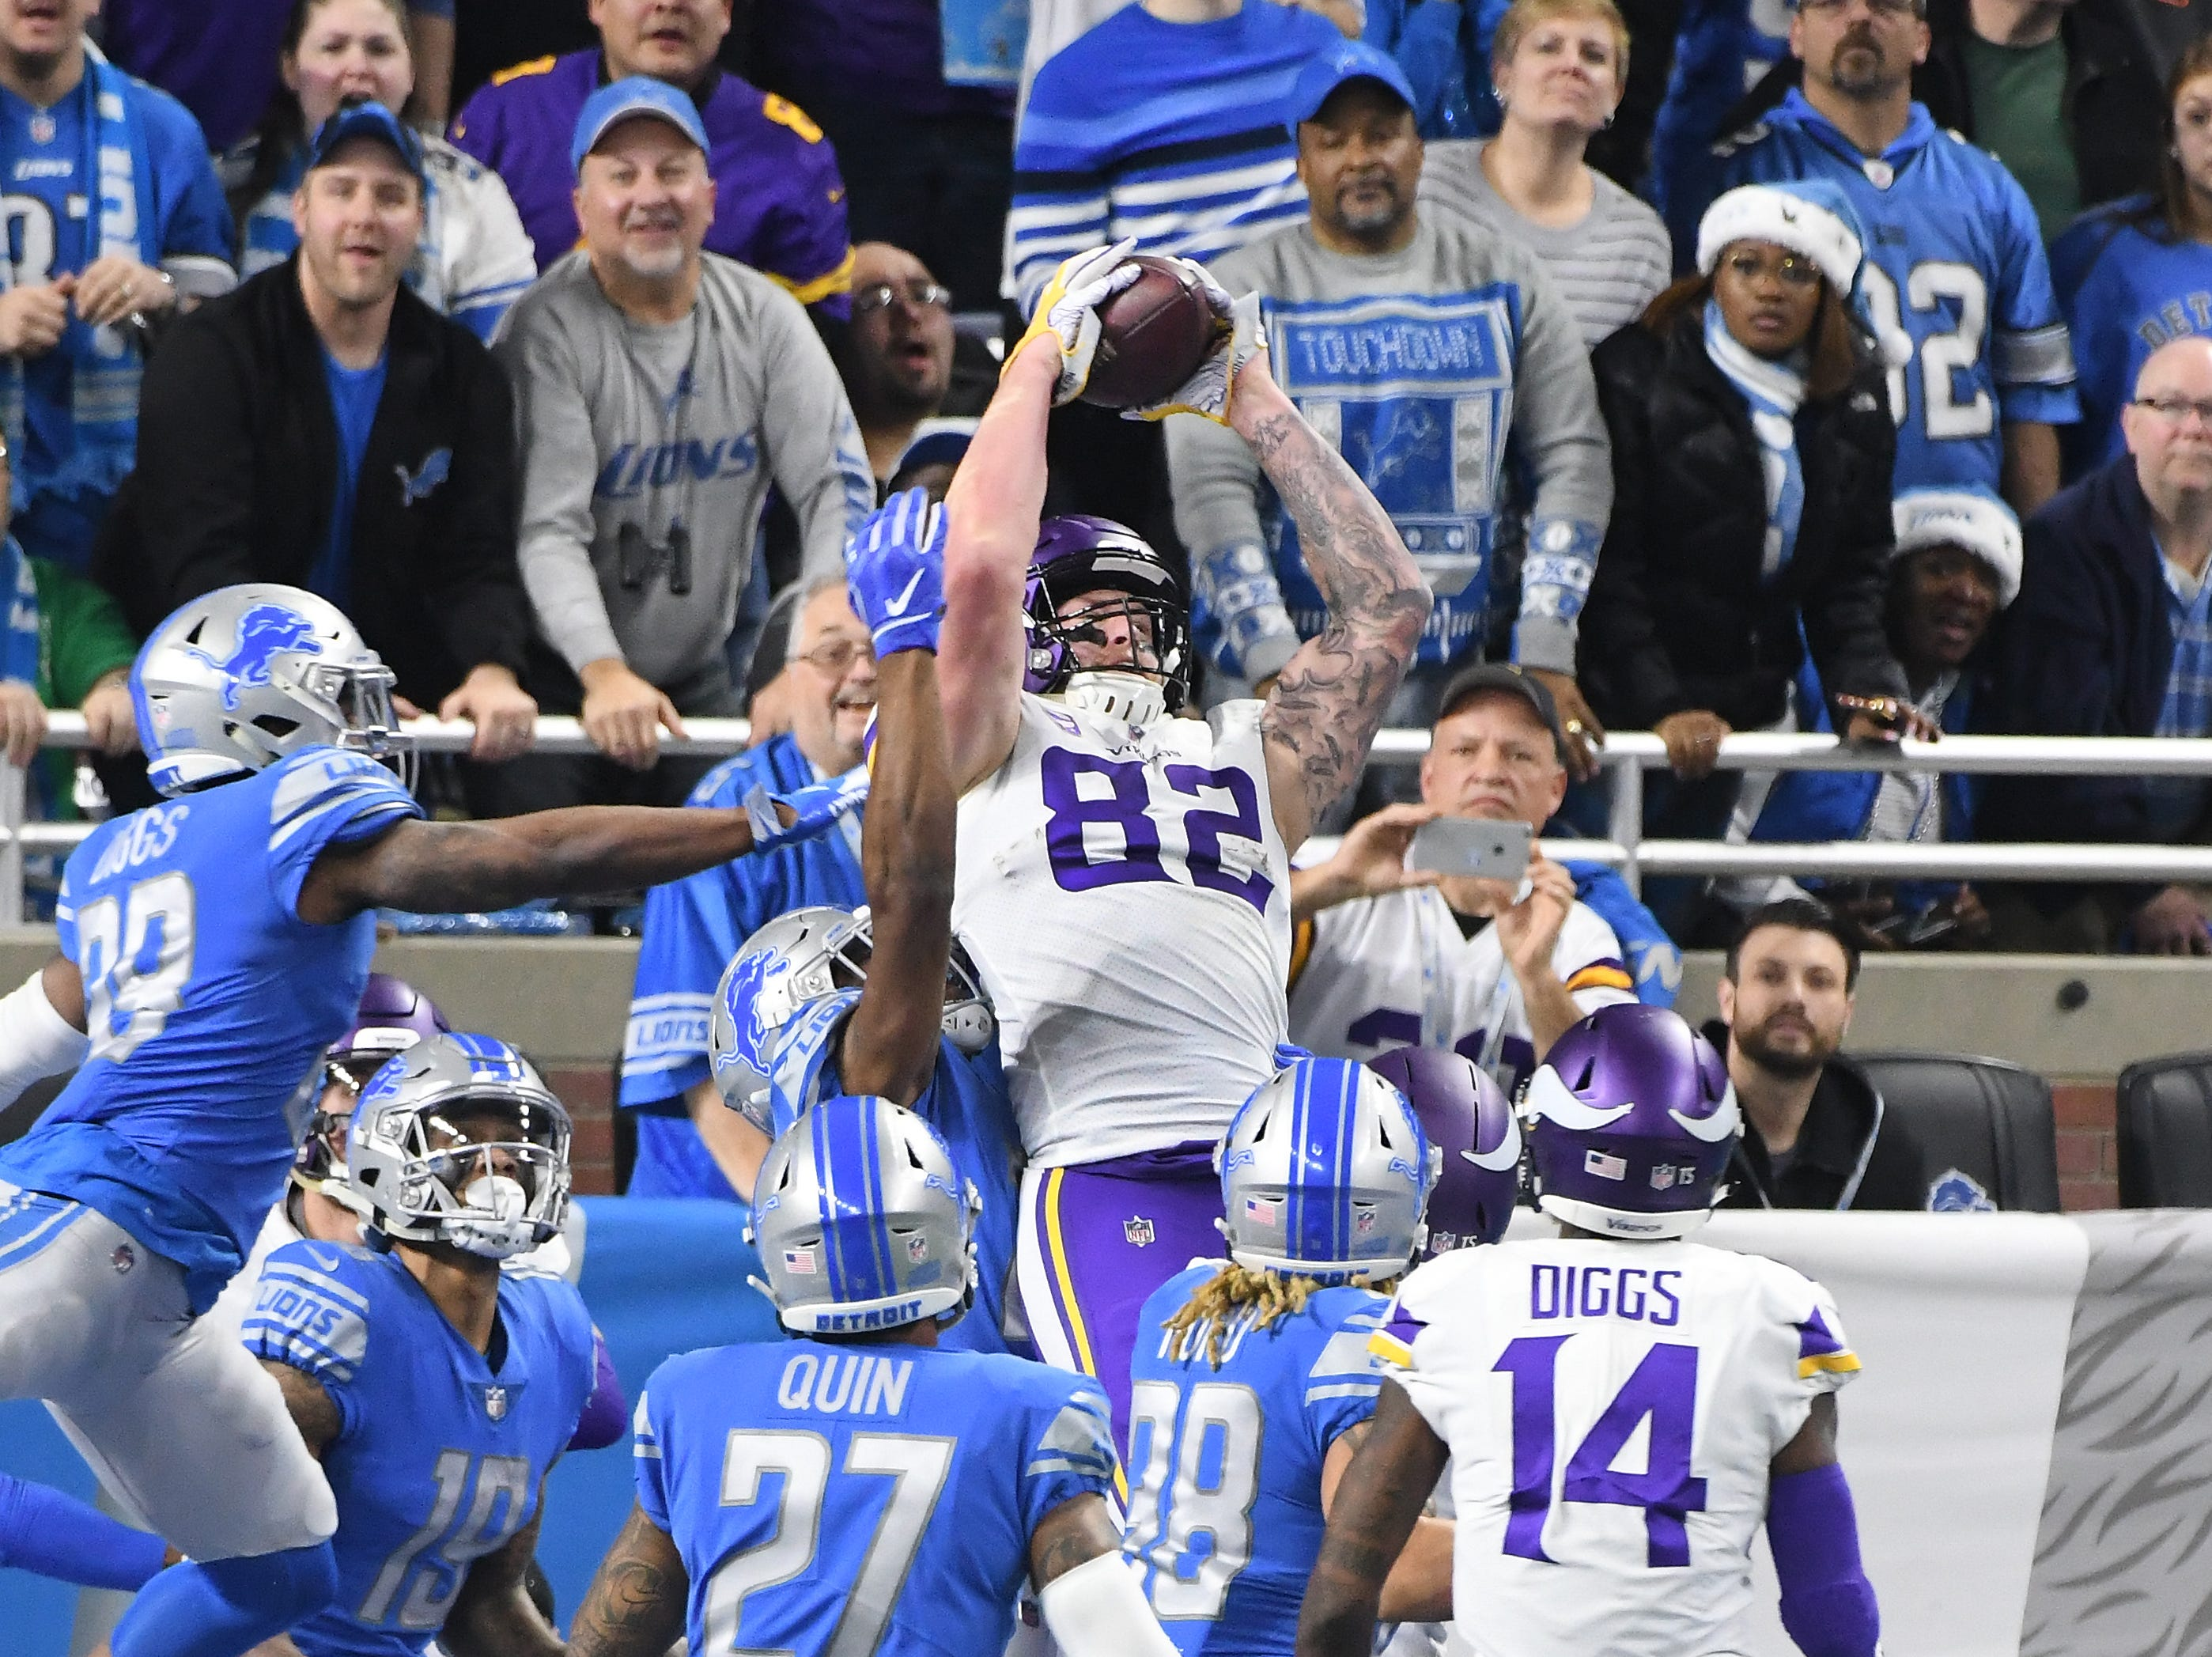 Viking's Kyle Rudolph pulls off 'Hail Mary' catch in the end zone as the clock runs out in the first half with Vikings leading 14-9.